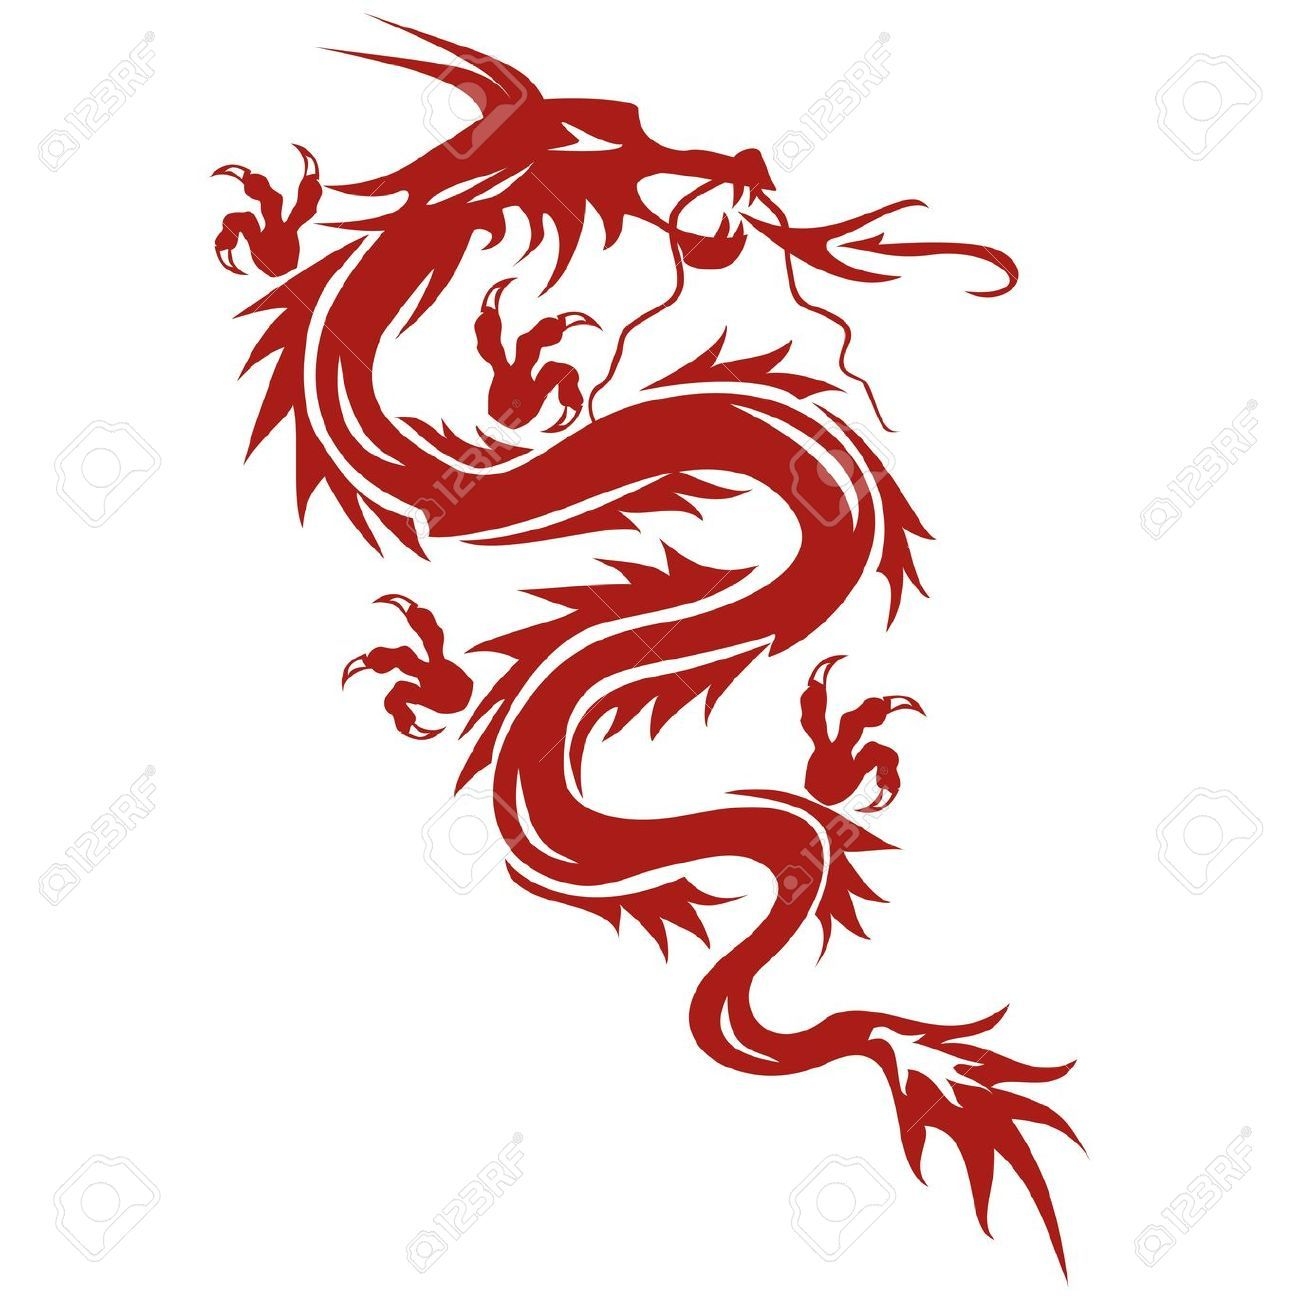 Dragon fire stock vector illustration and royalty free dragon fire dragon fire stock vector illustration and royalty free dragon fire biocorpaavc